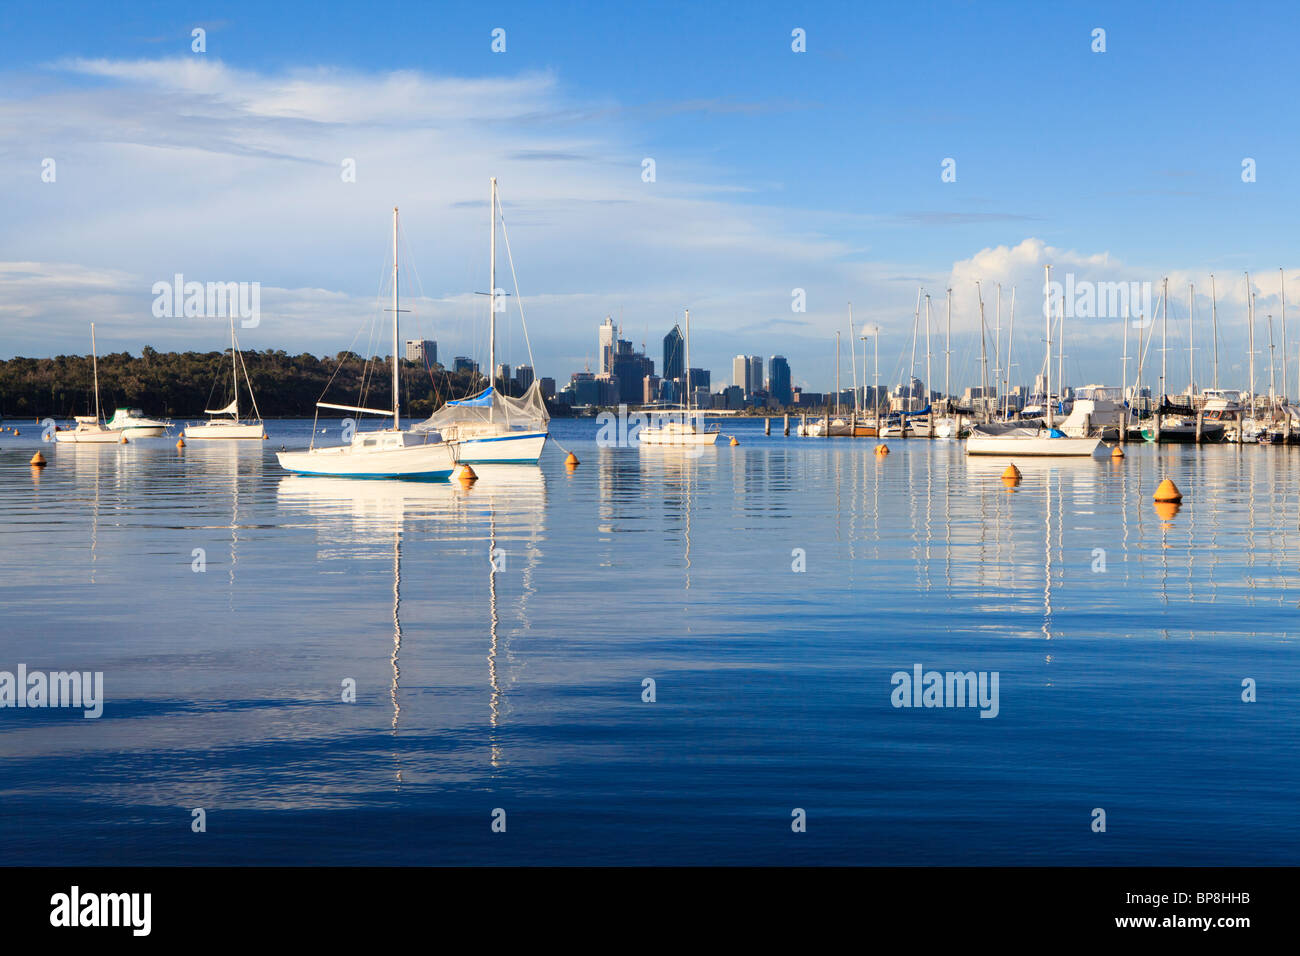 Yachts moored at Matilda Bay on the Swan River, with Perth's skyscrapers in the distance. Stock Photo